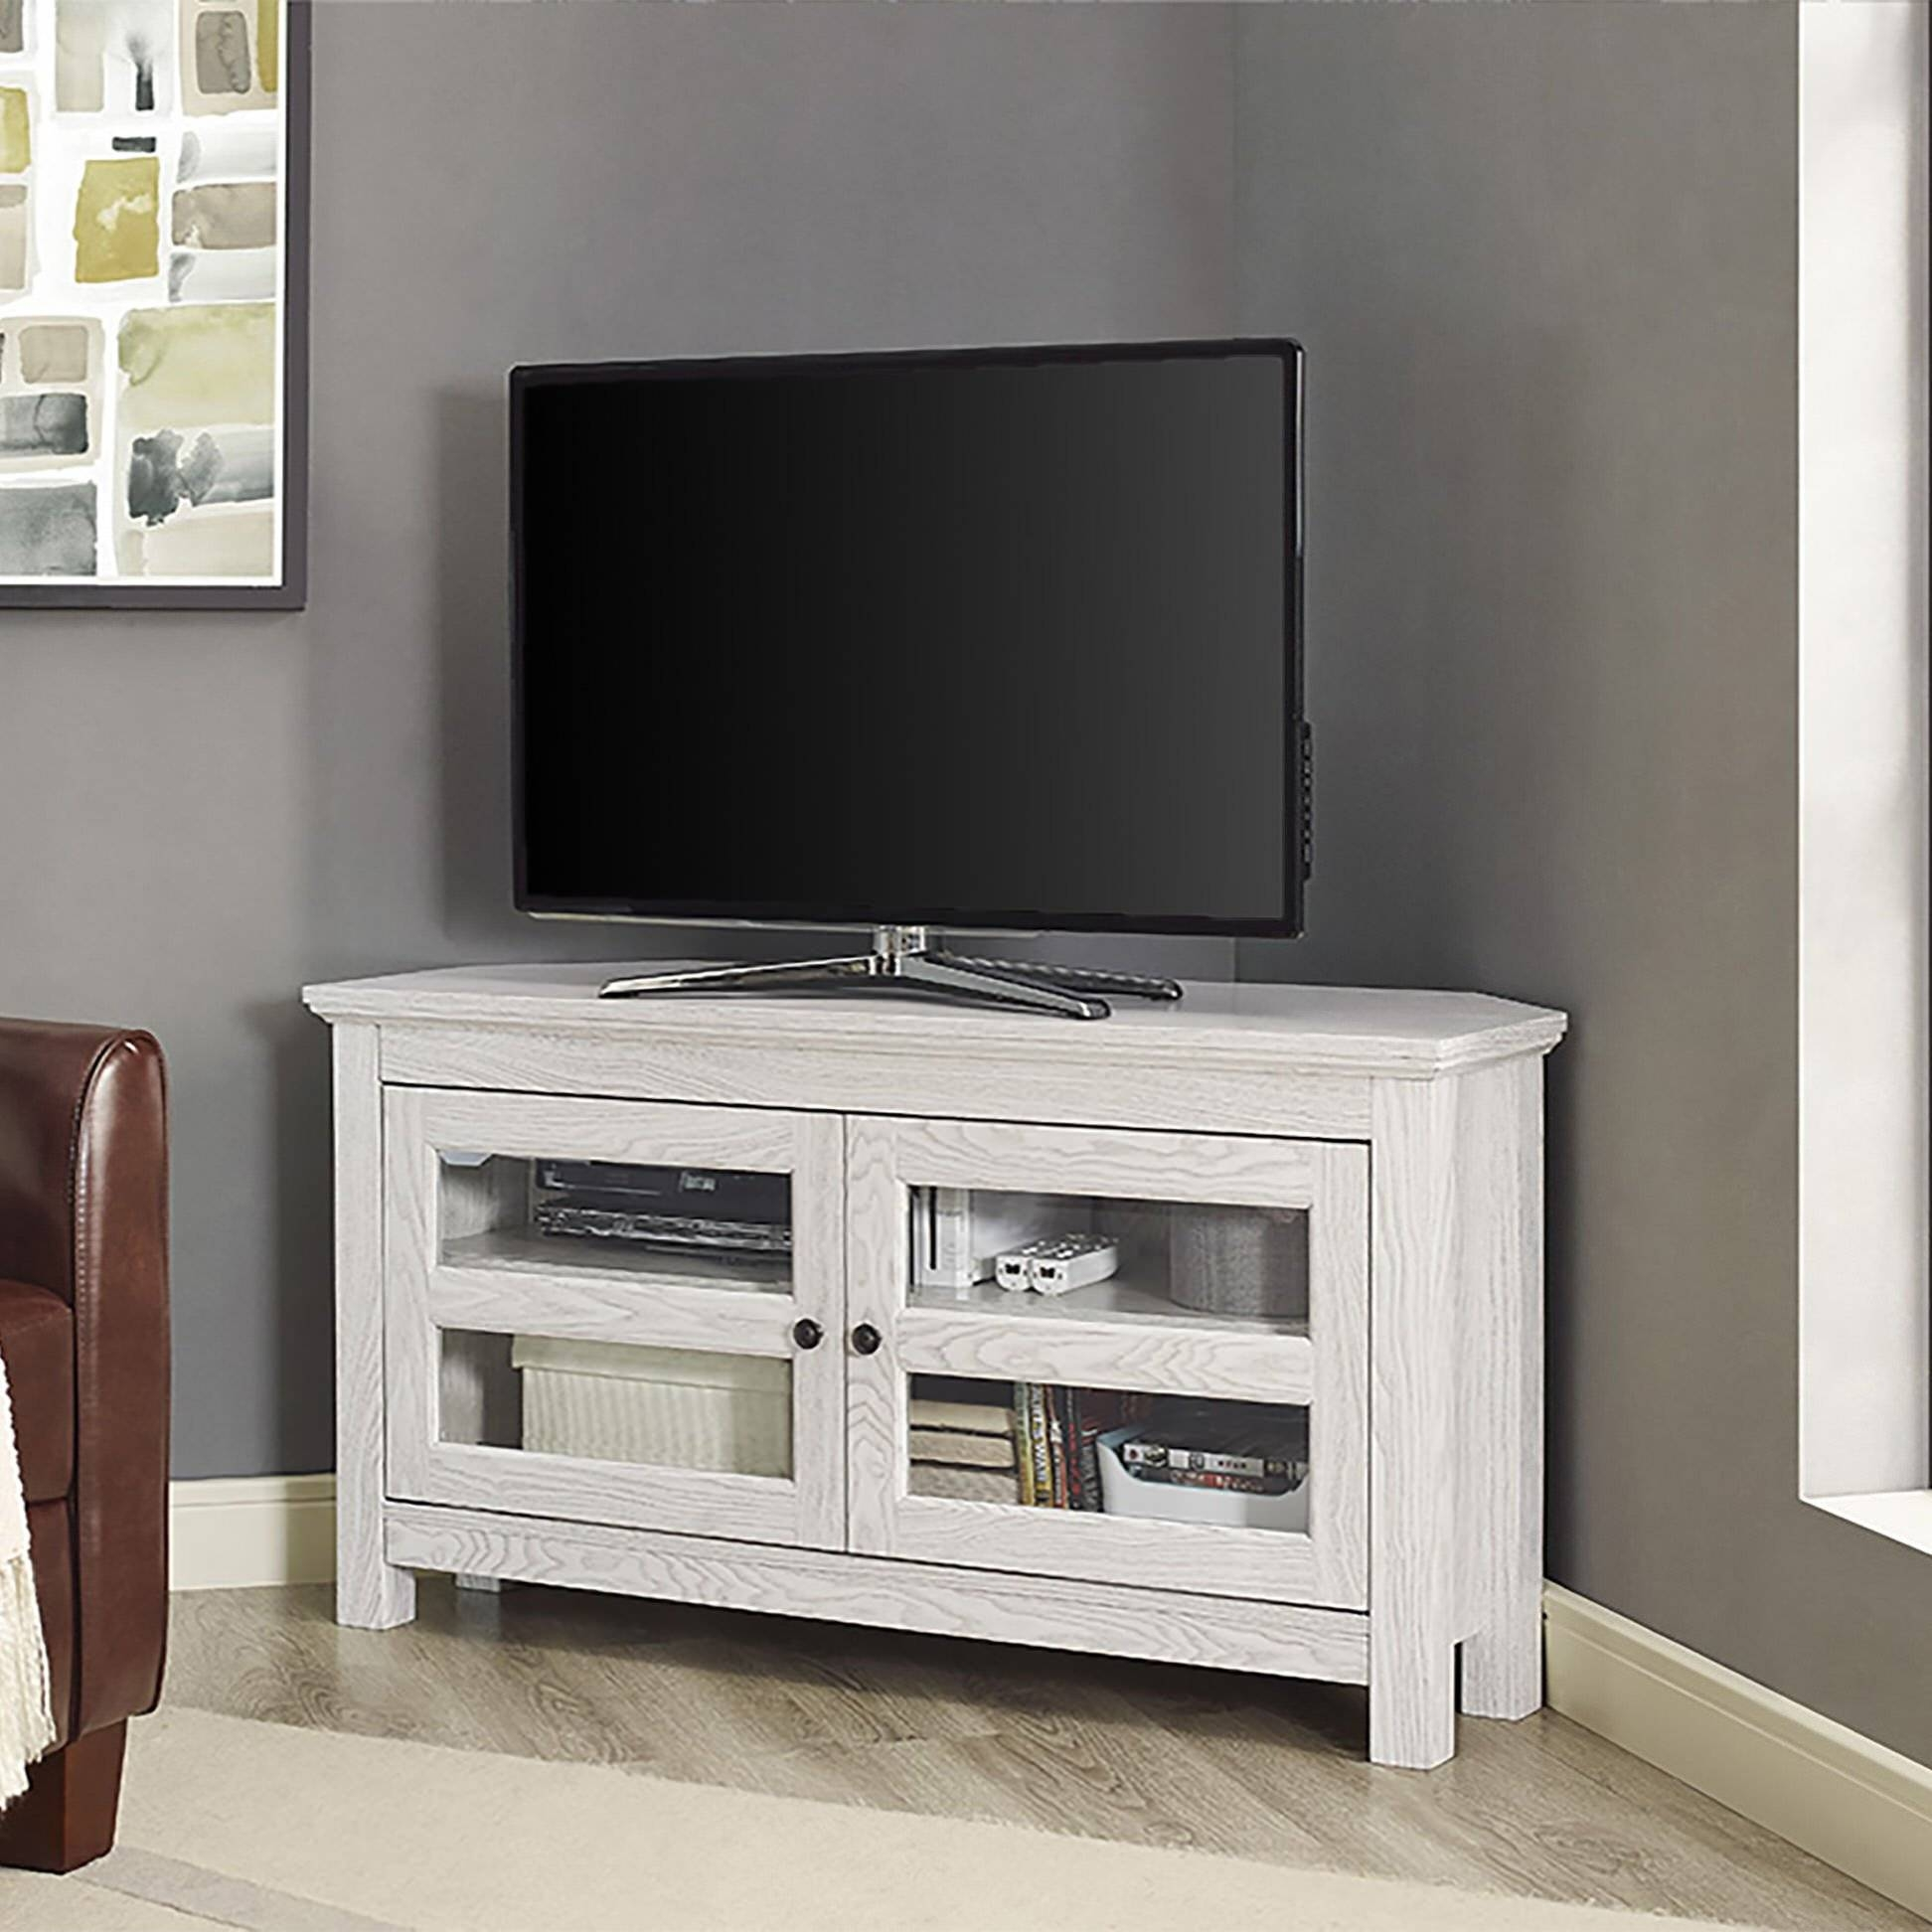 44 Inch White Wash Wood Tv Standwalker Edison with White And Wood Tv Stands (Image 1 of 15)